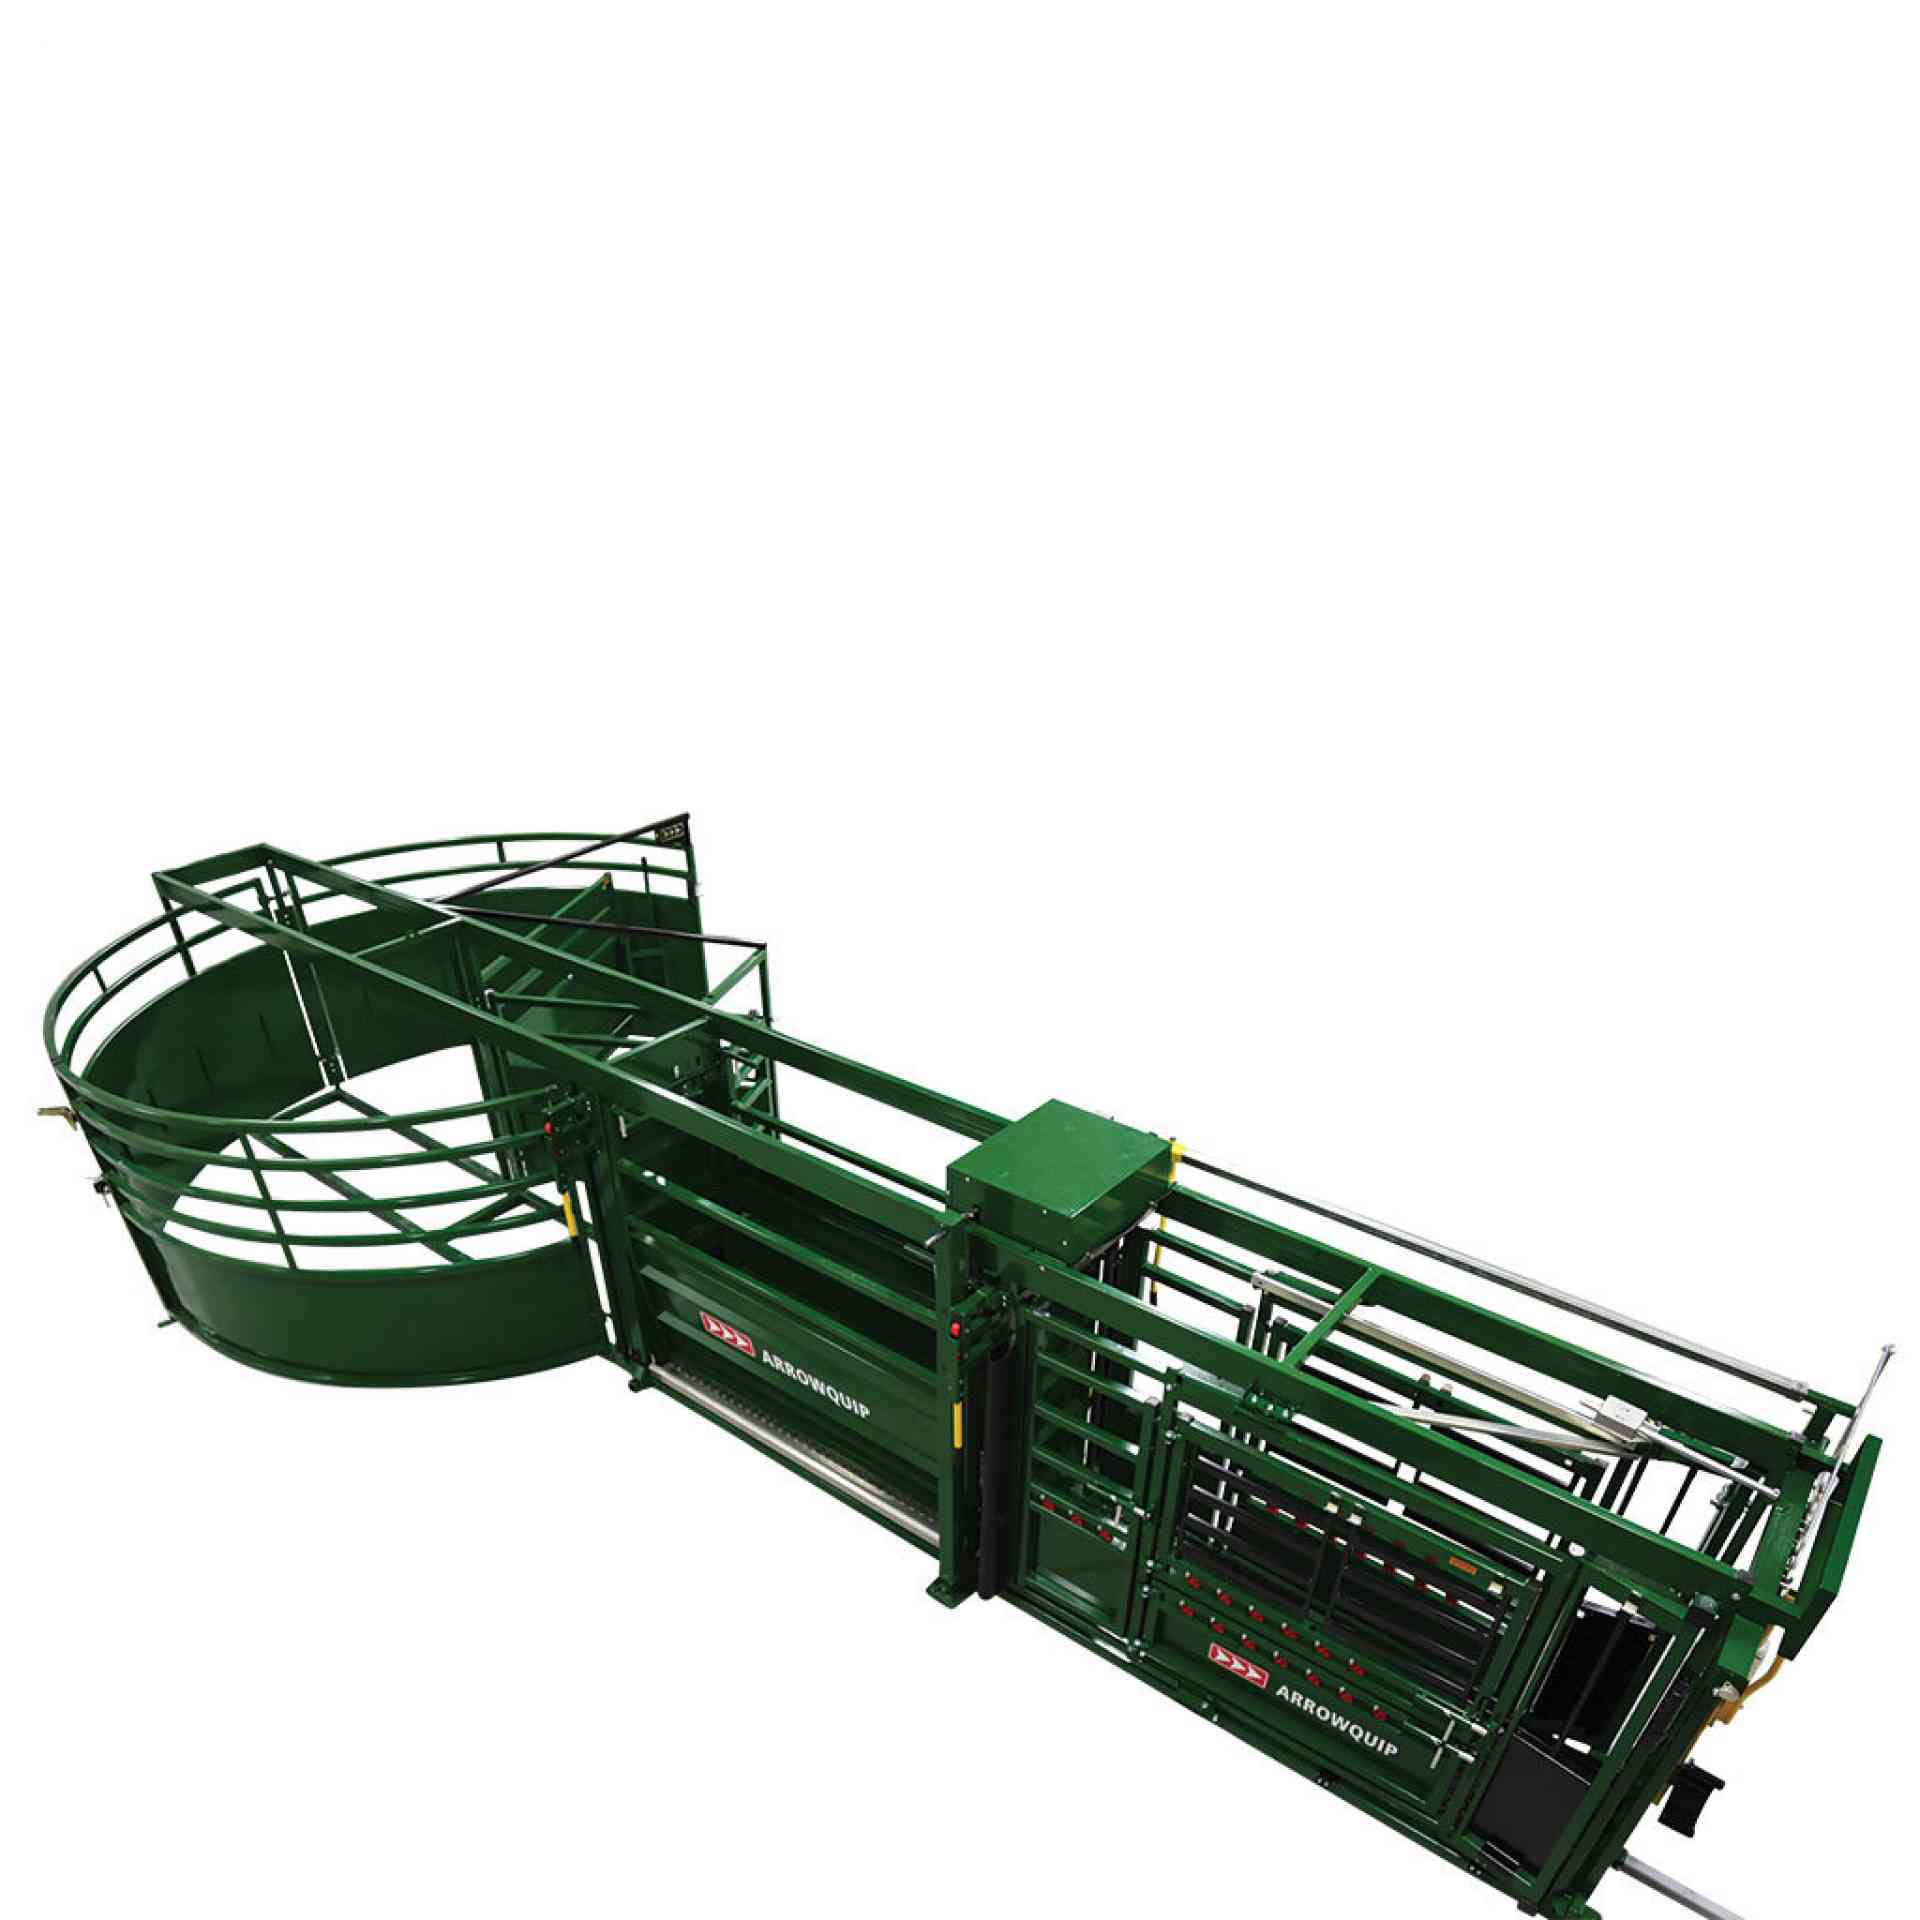 Portable Cattle Chute, Alley & Tub from Above | Arrowquip Cattle Equipment